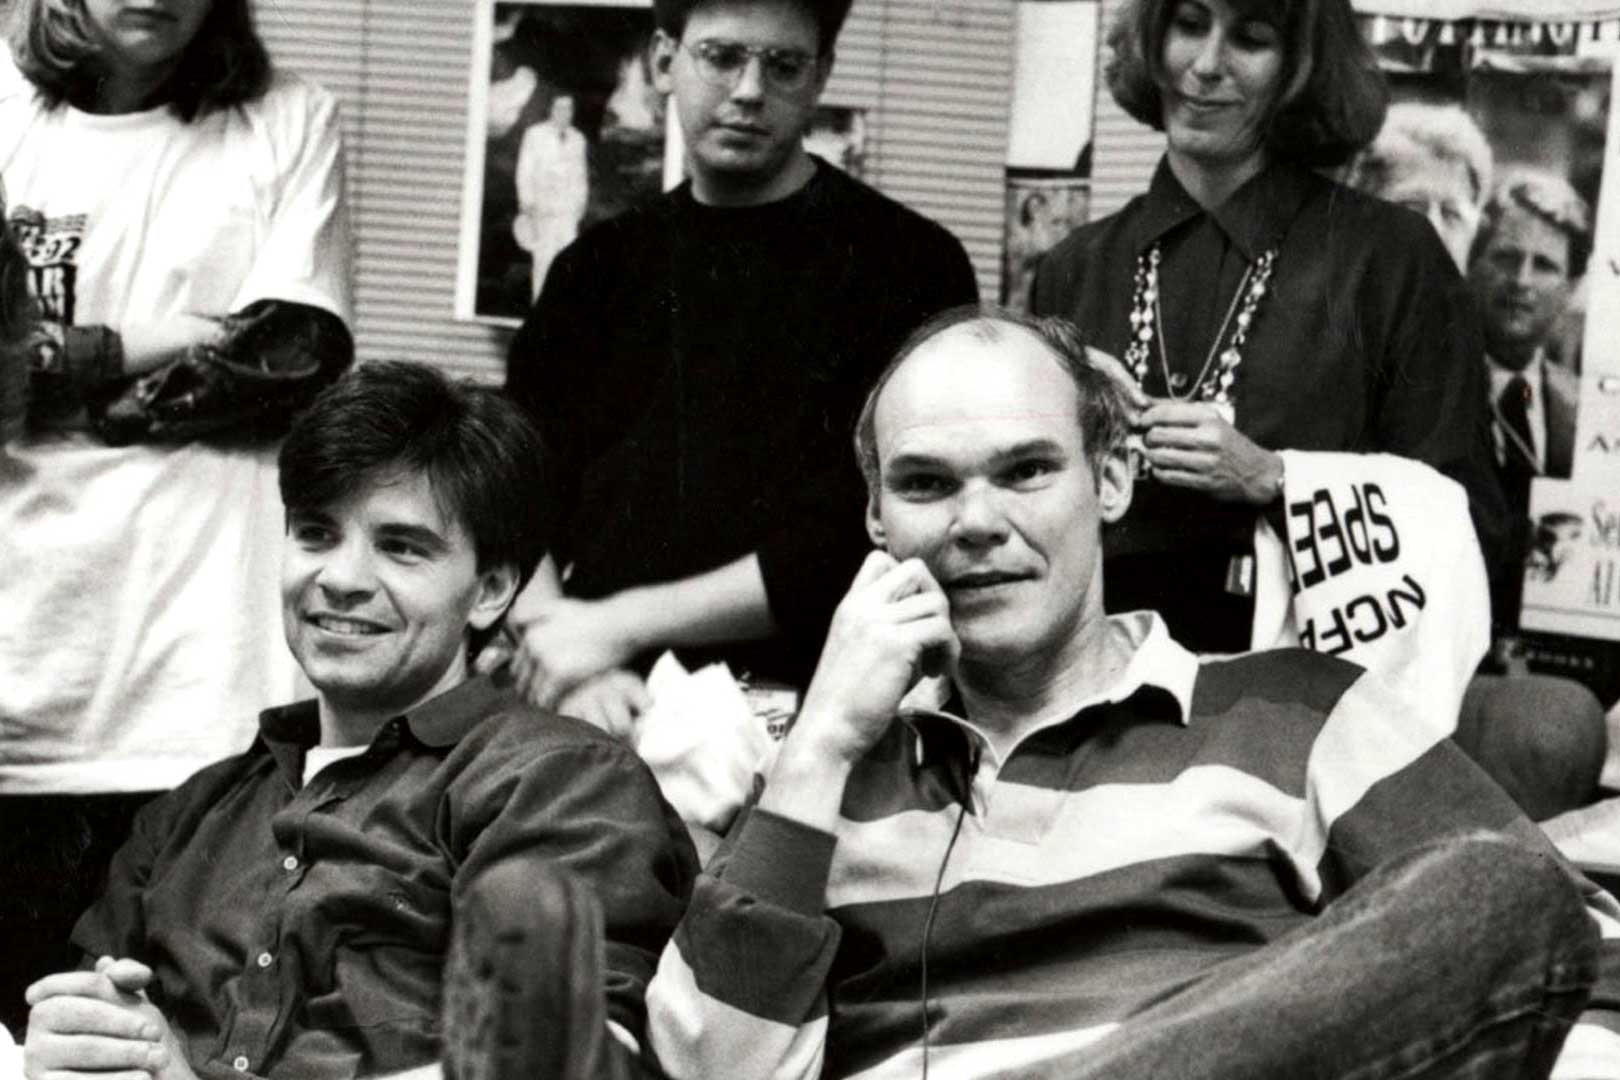 """The War Room"" follows Bill Clinton's communication director George Stephanopoulos, shown at left, and campaign strategist James Carville, right, during the 1992 campaign."